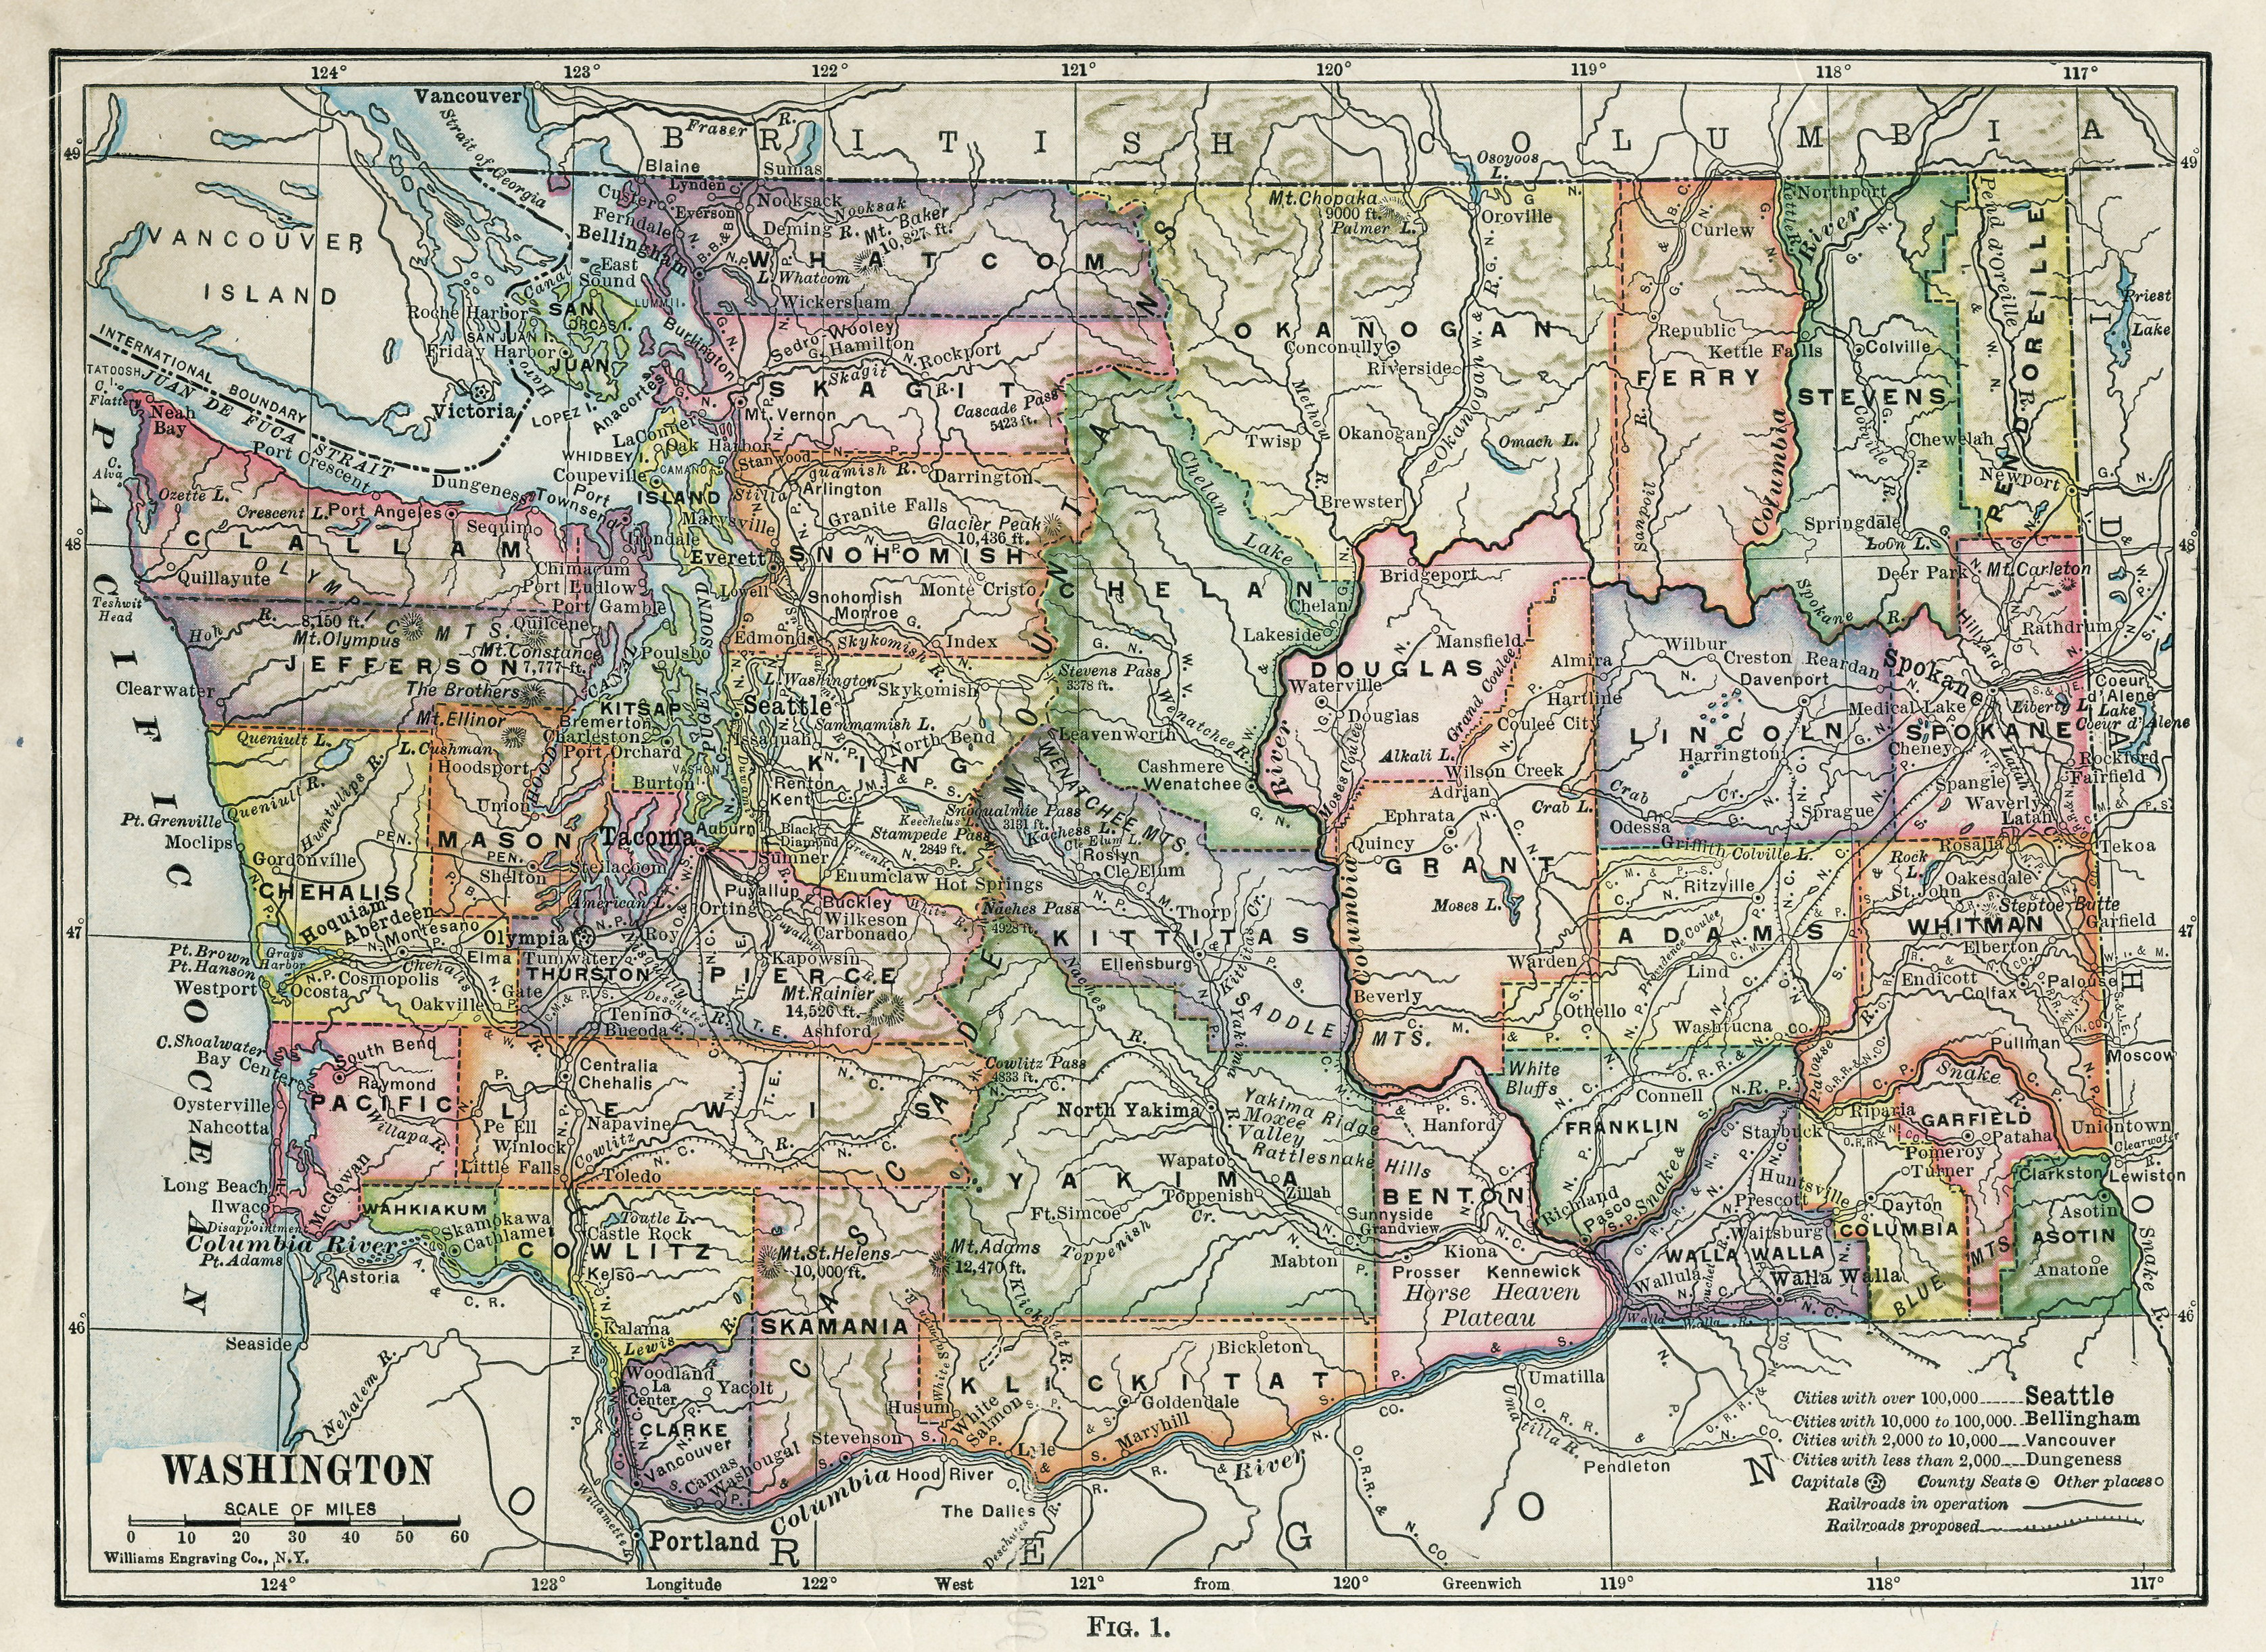 FileWashington State Map Jpg Wikimedia Commons - Map of washington state